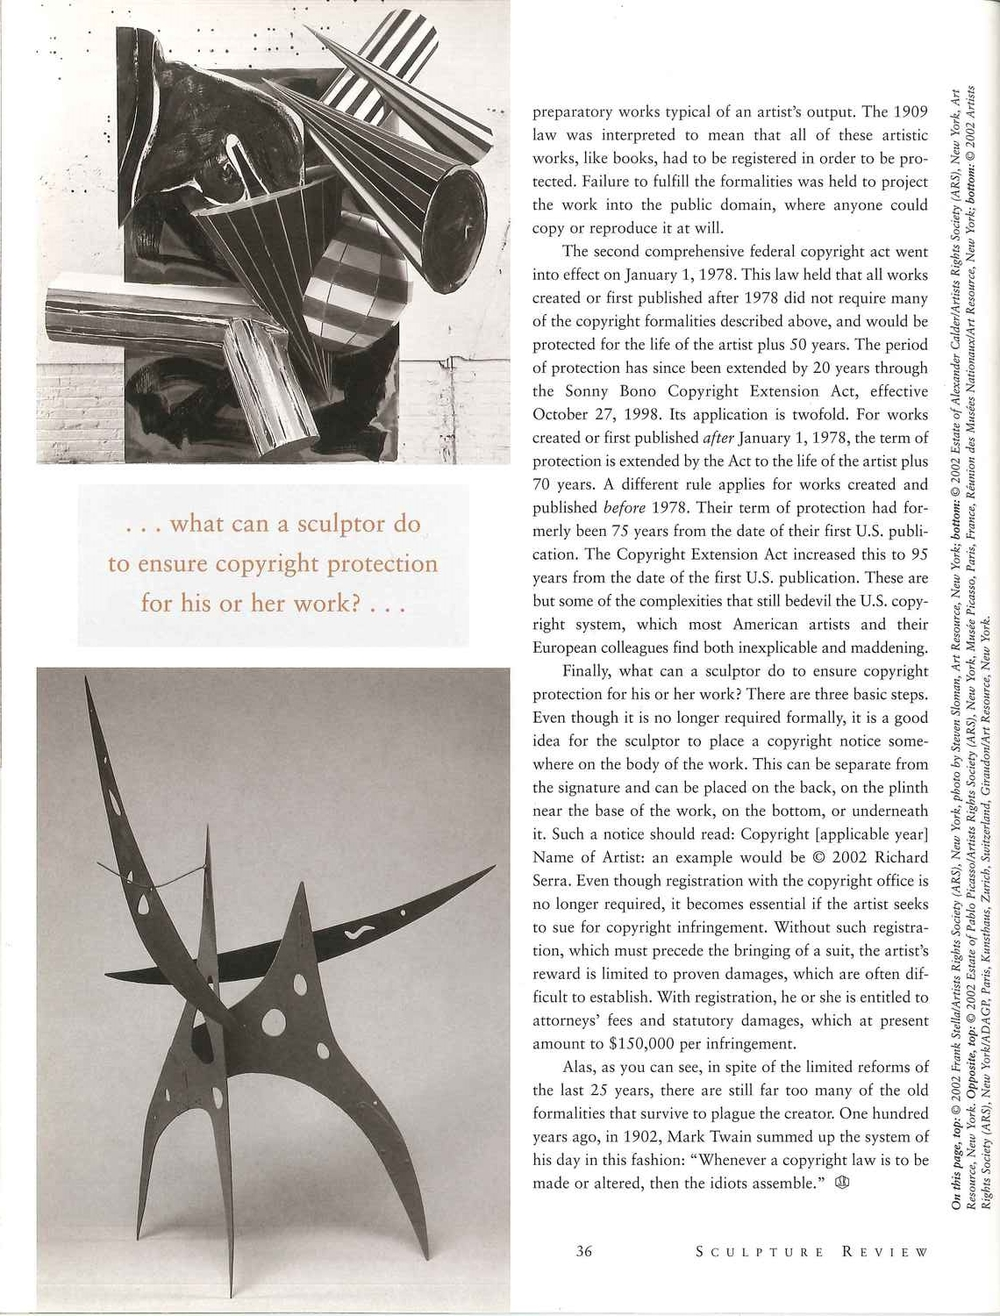 sculpture review_Page_3.jpg